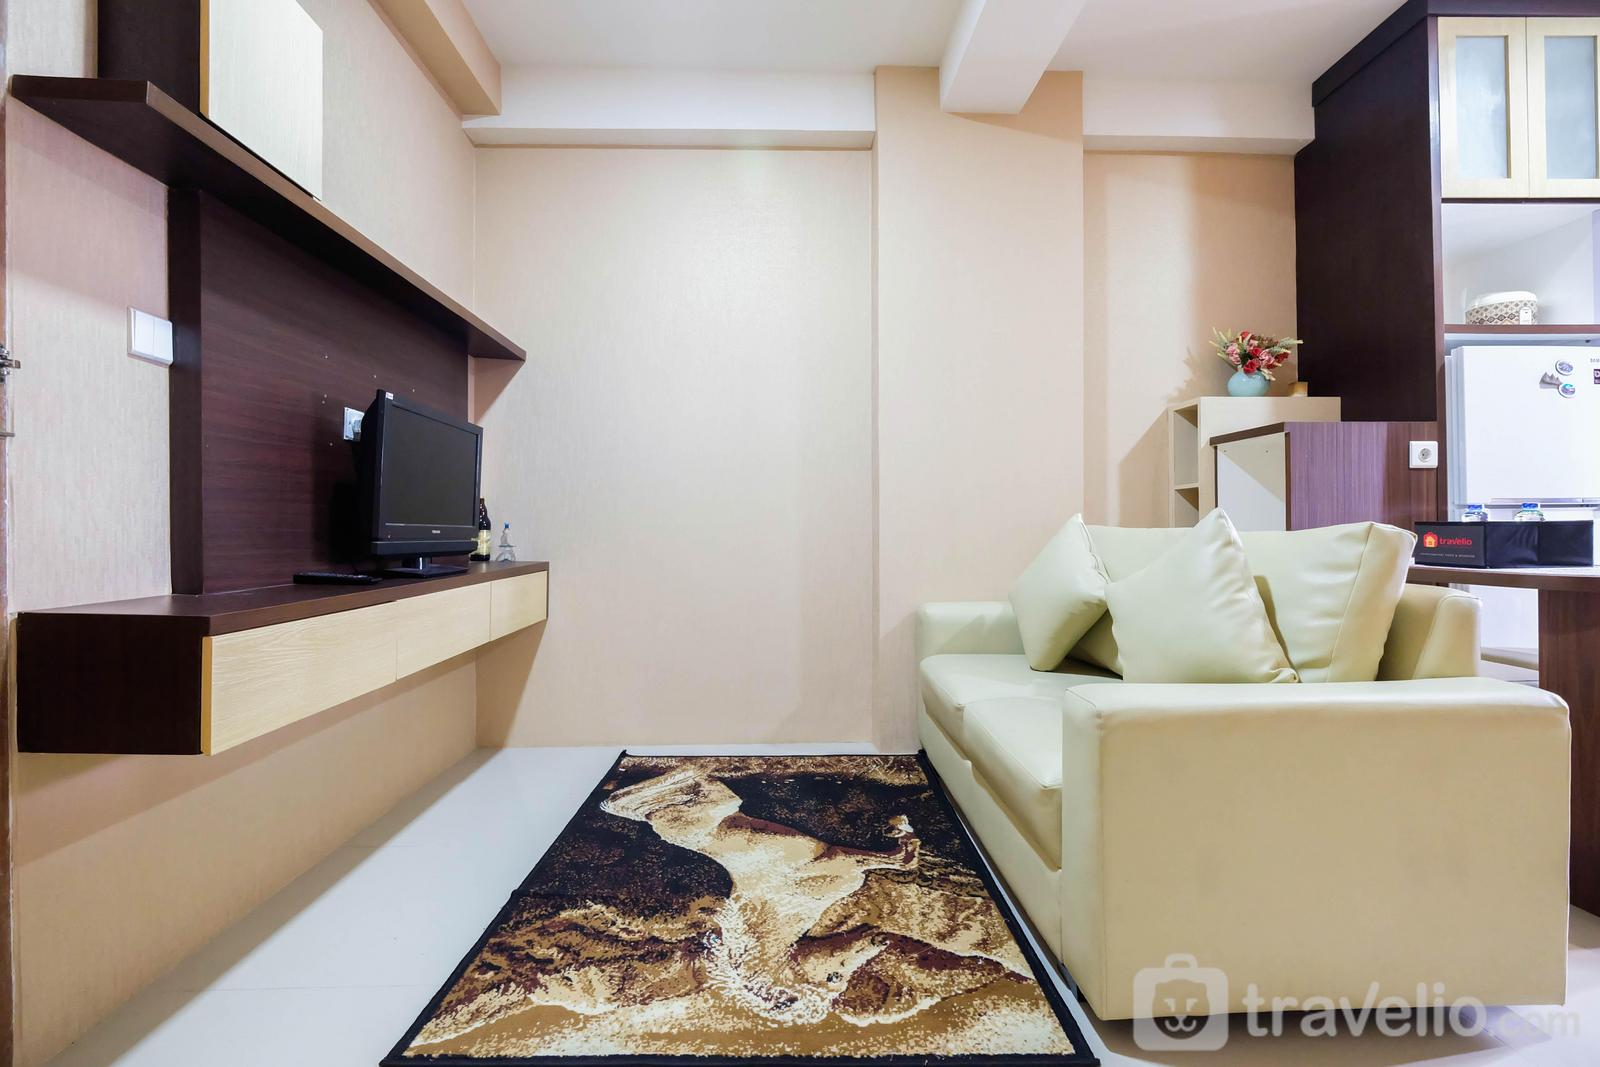 Oak Tower - Homey 2BR The Oak Tower Apartment By Travelio